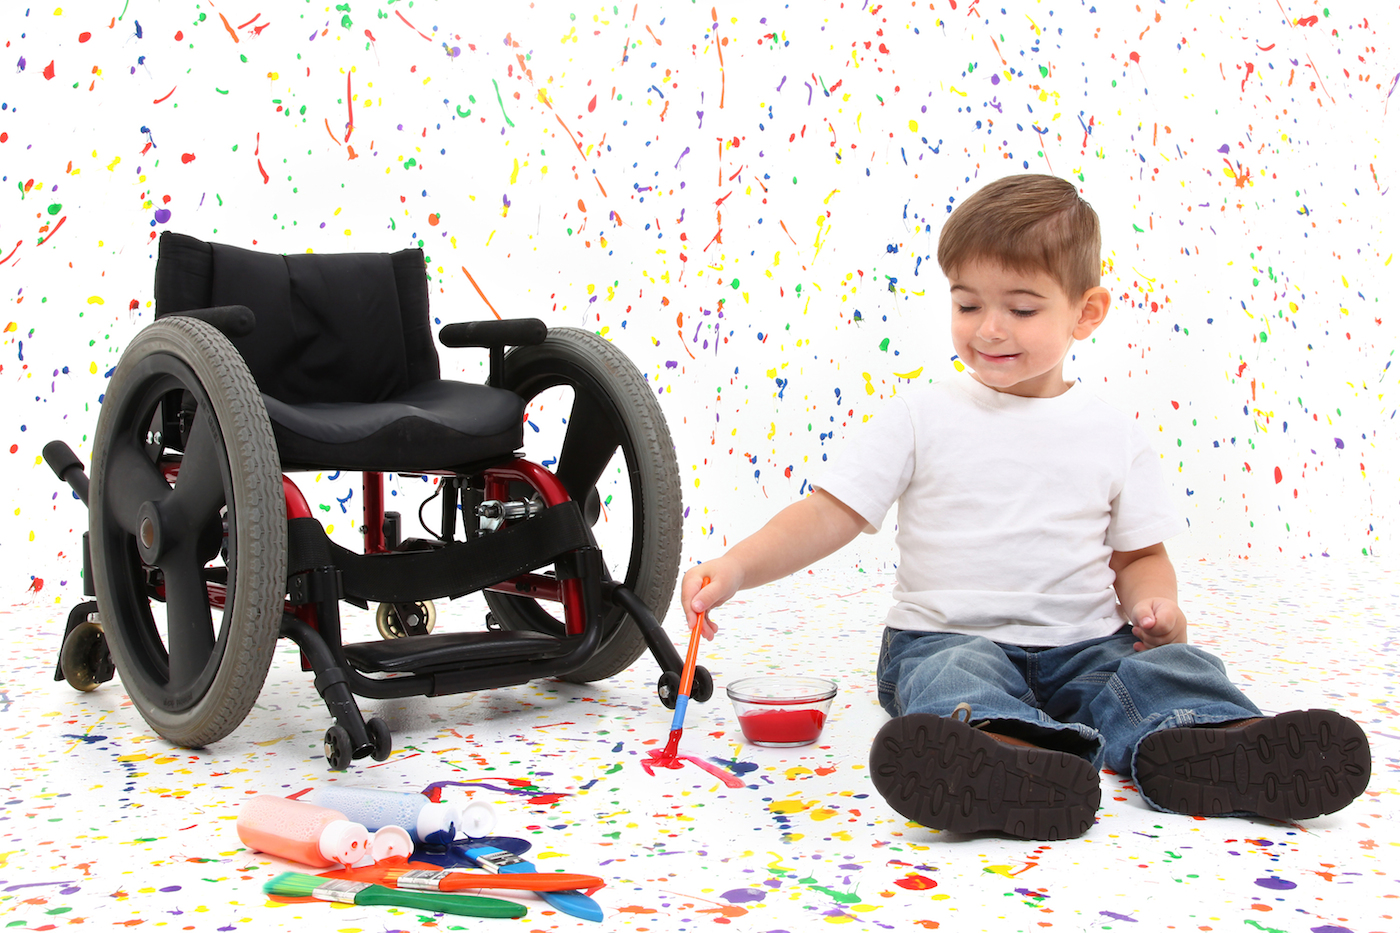 Child in wheelchair splatters paint in a white room